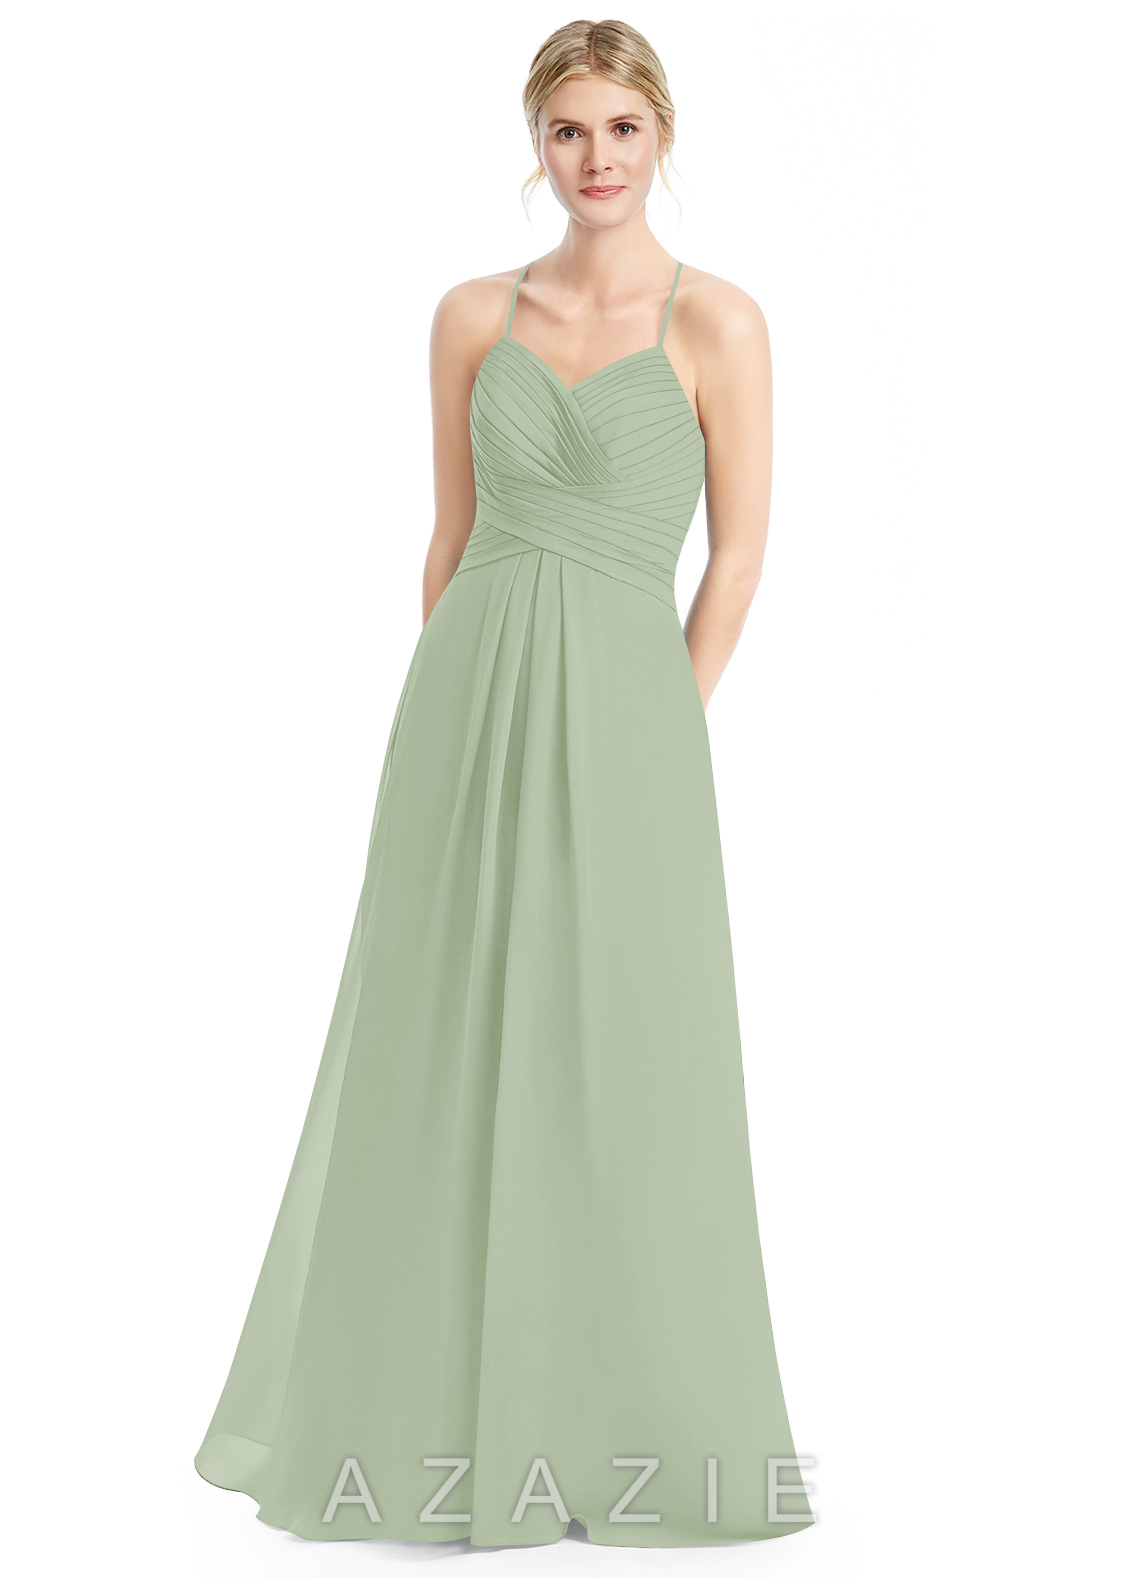 5c98883b373 Azazie Cecilia Bridesmaid Dress